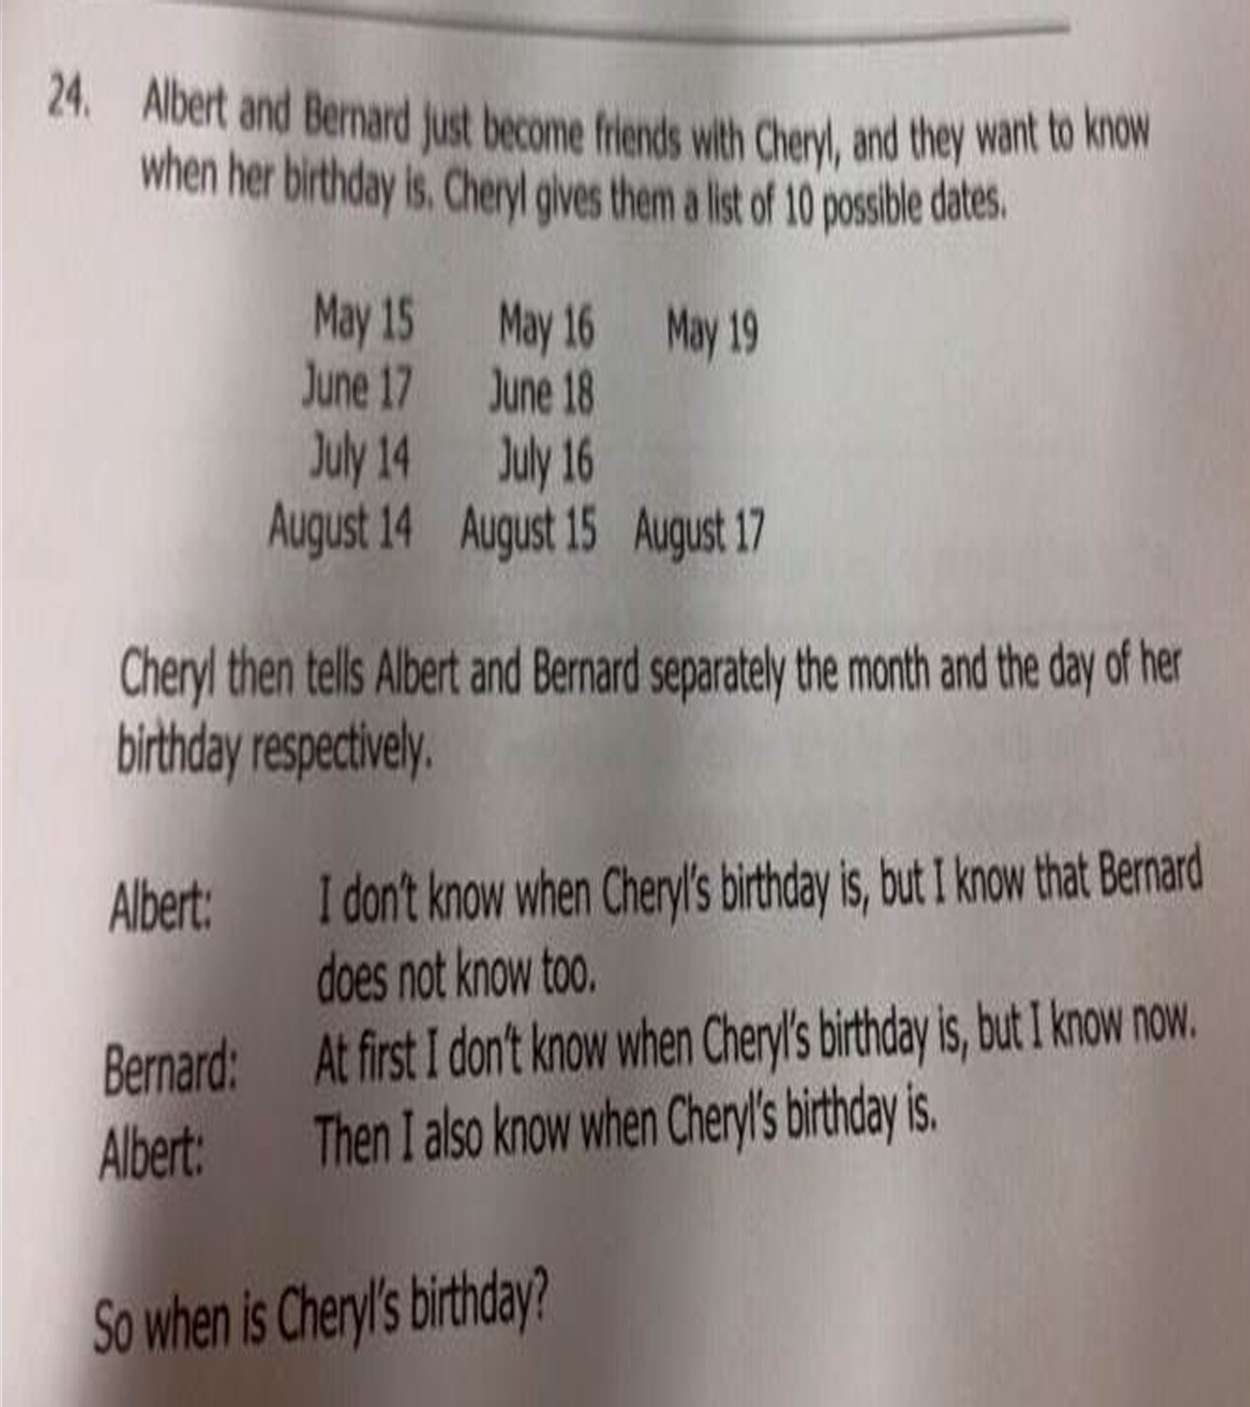 Today Viral News Home: When Is Cheryl's Birthday? Viral Math Problem Stumps The